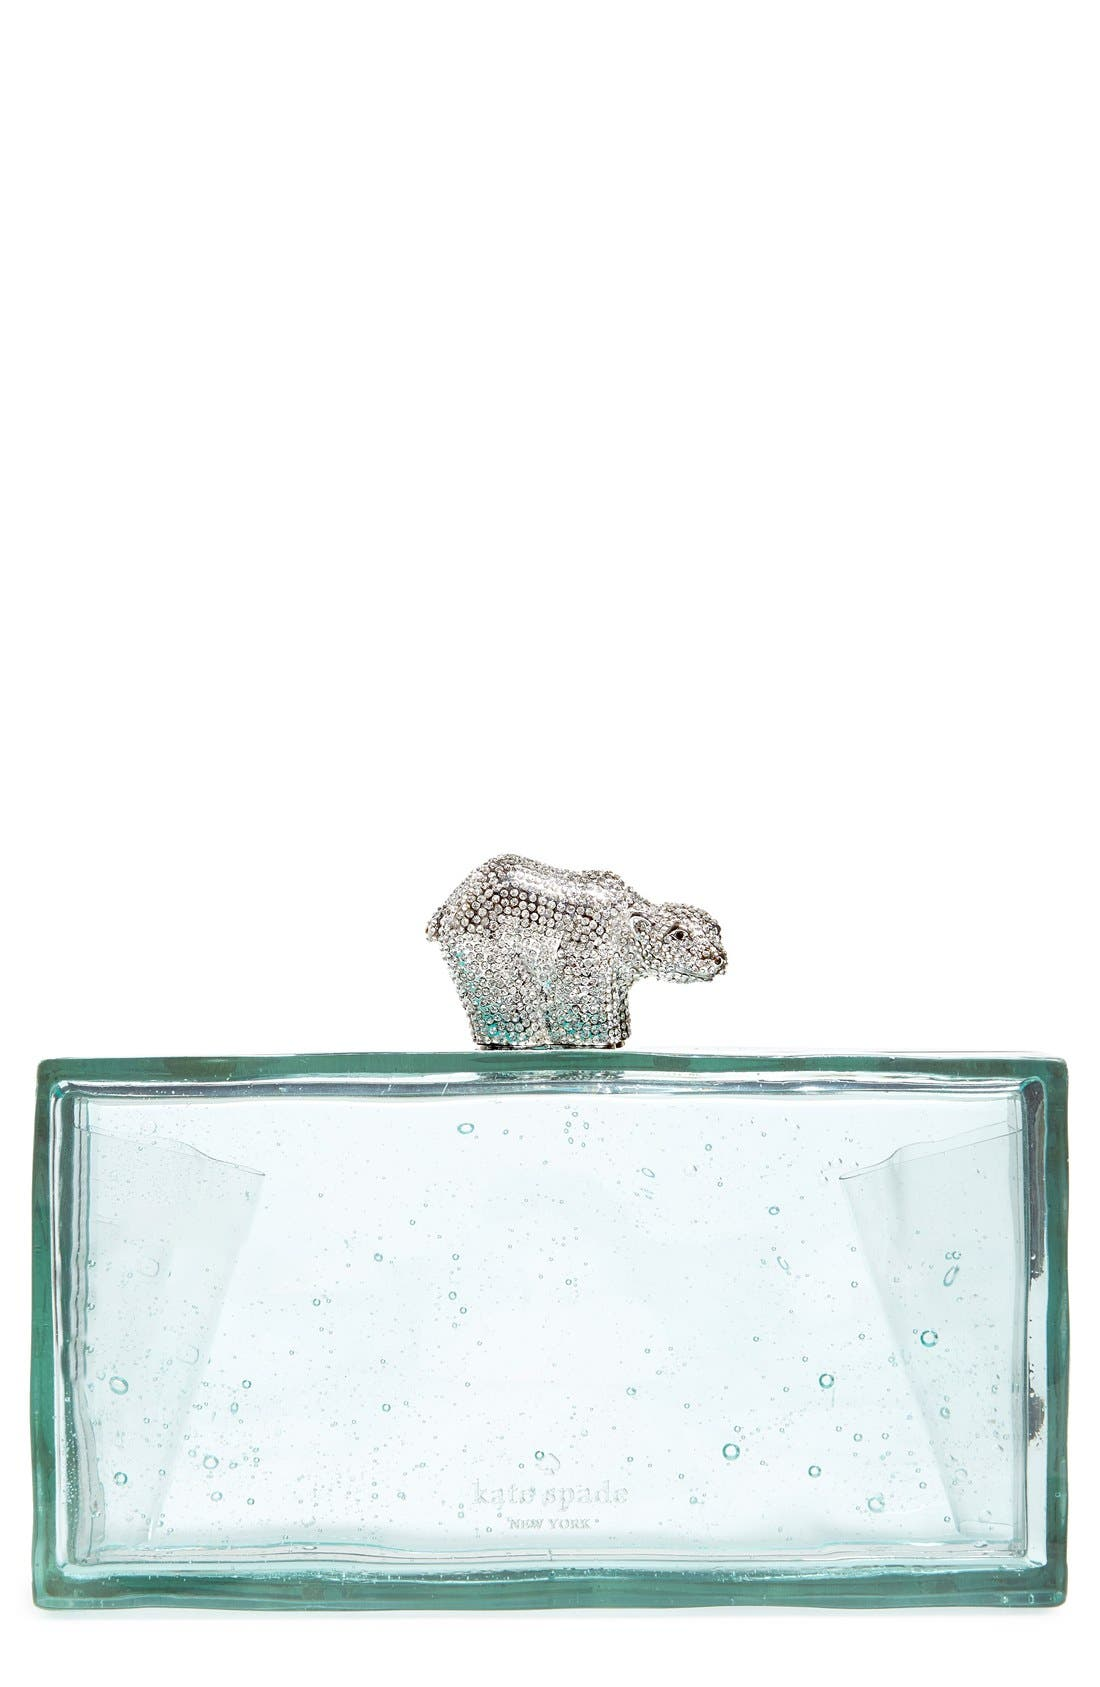 Alternate Image 1 Selected - kate spade new york 'polar bear on ice' clutch